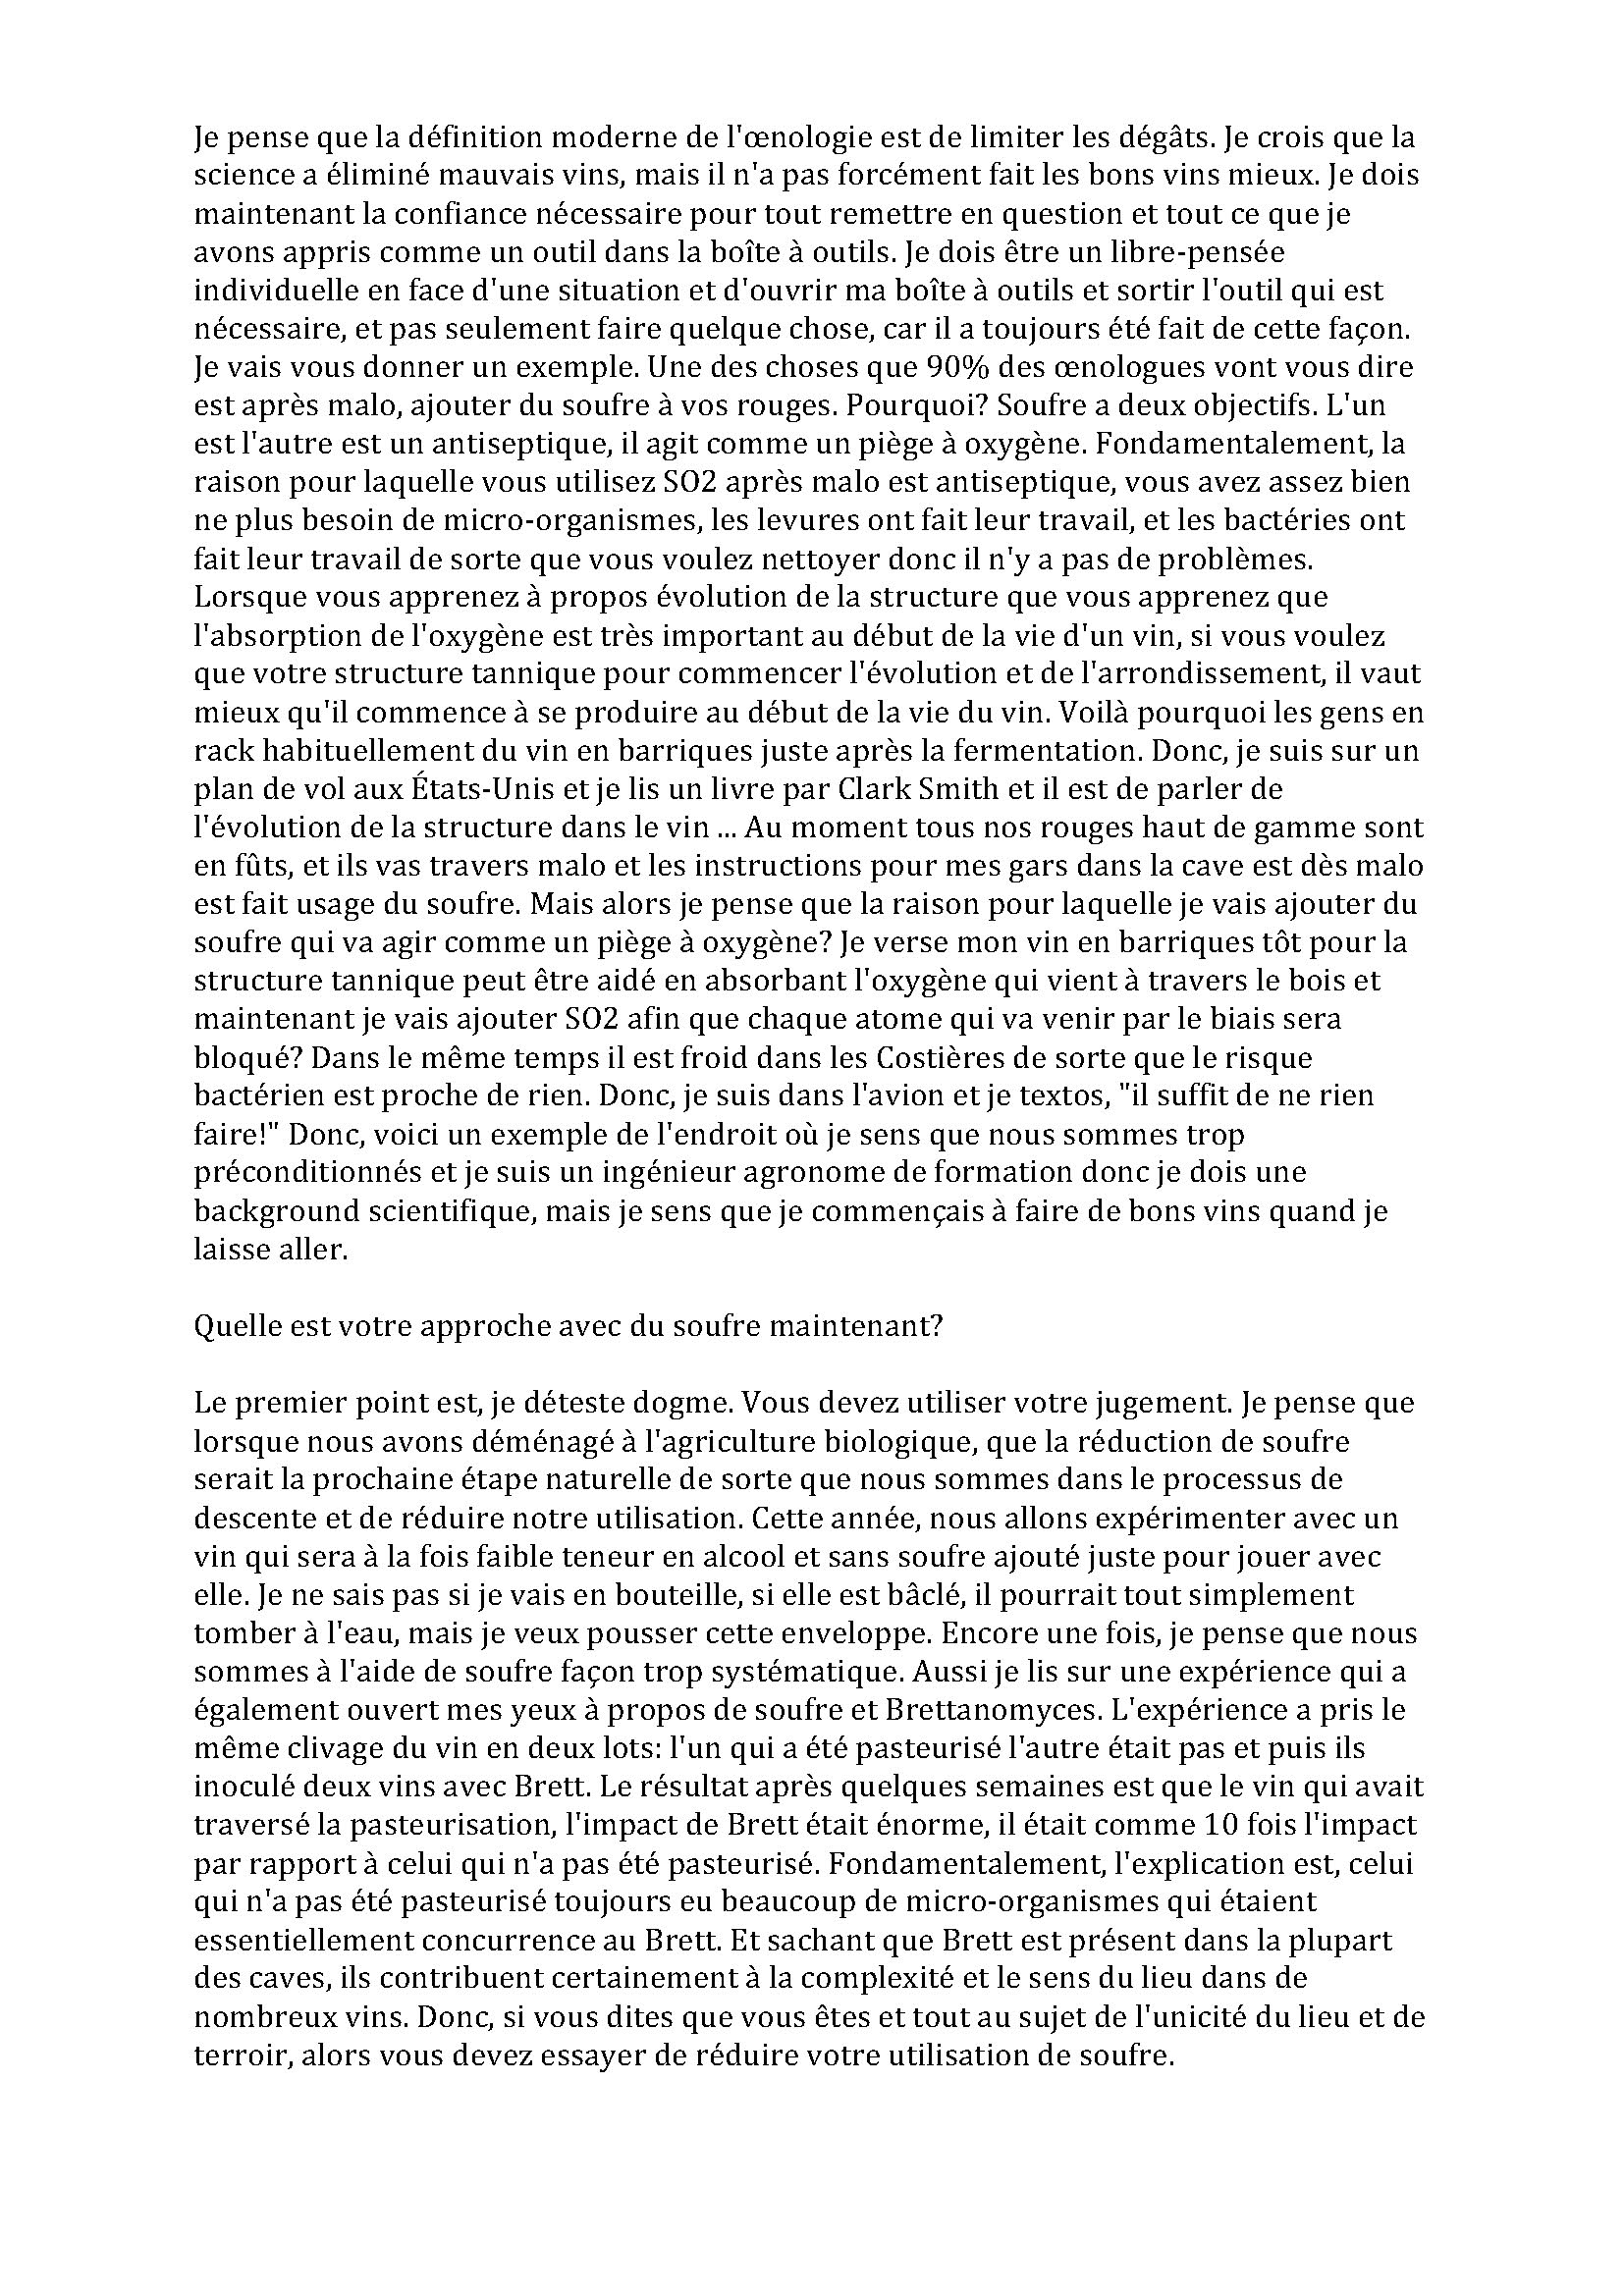 michel gassier_Page_10